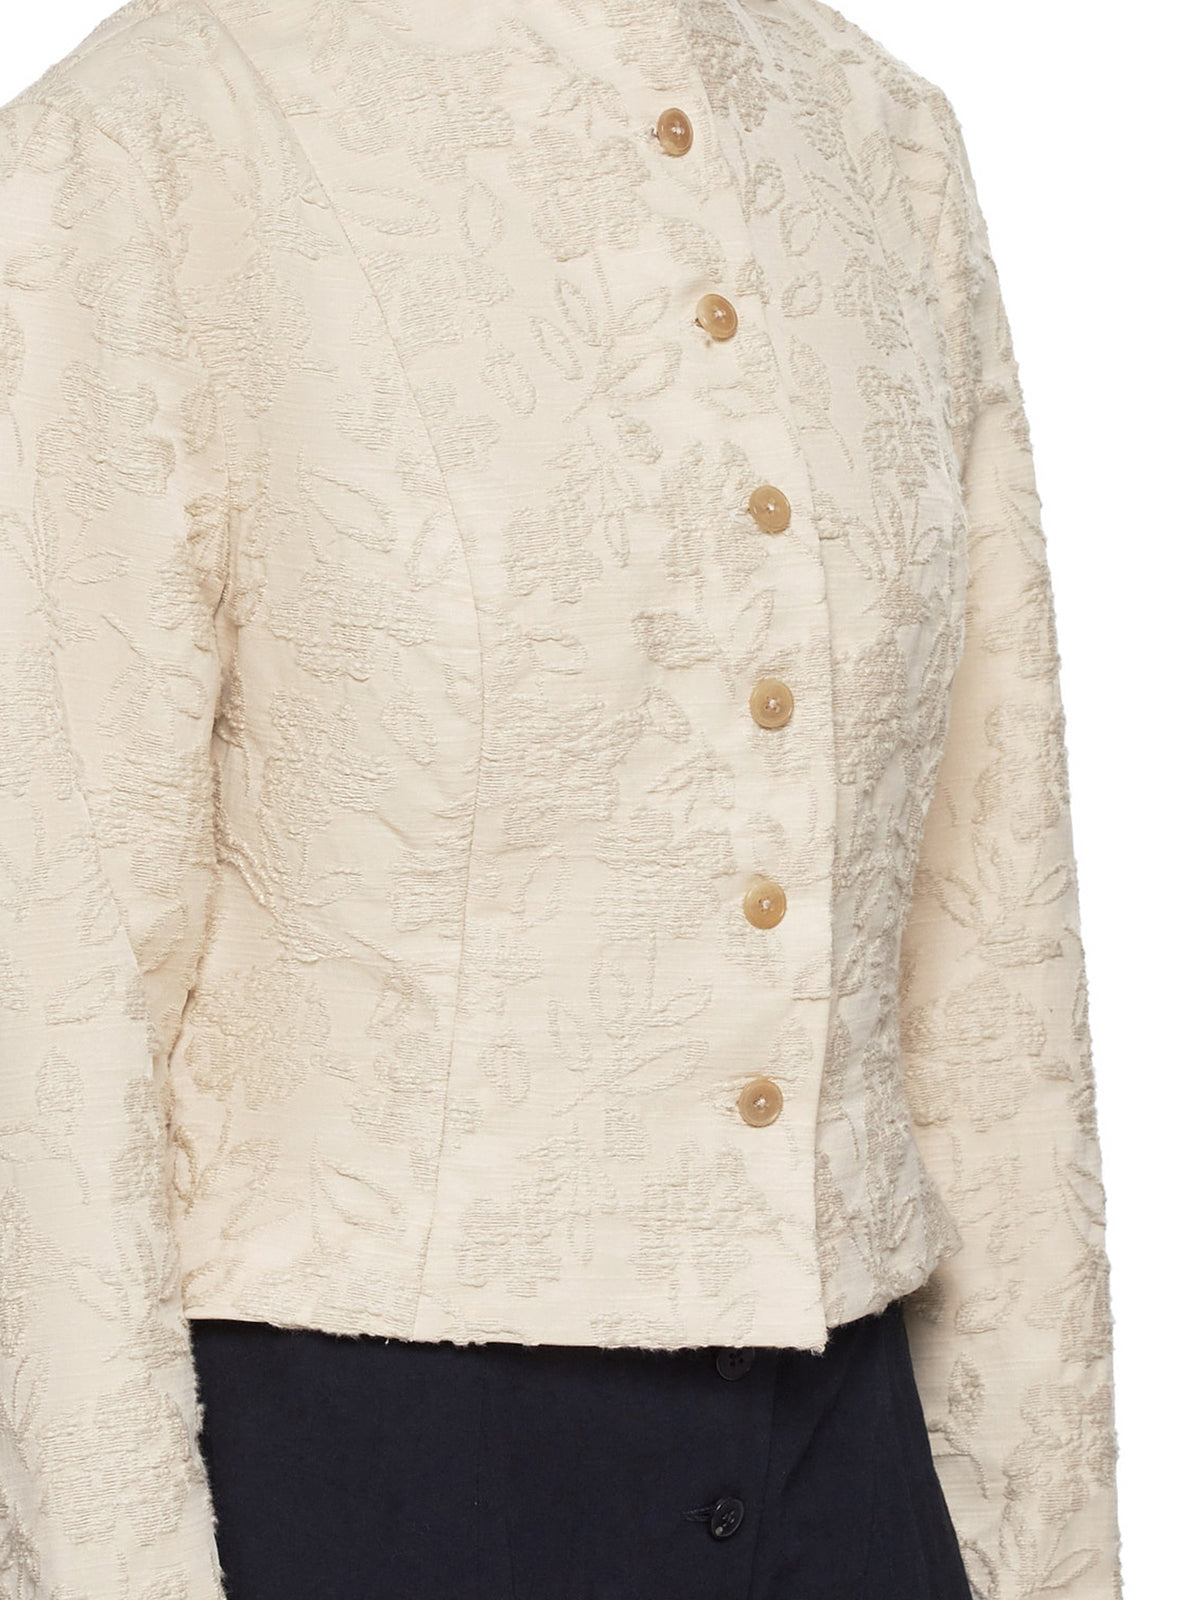 Cropped Jacket (JW102C-FLO-NATURAL)